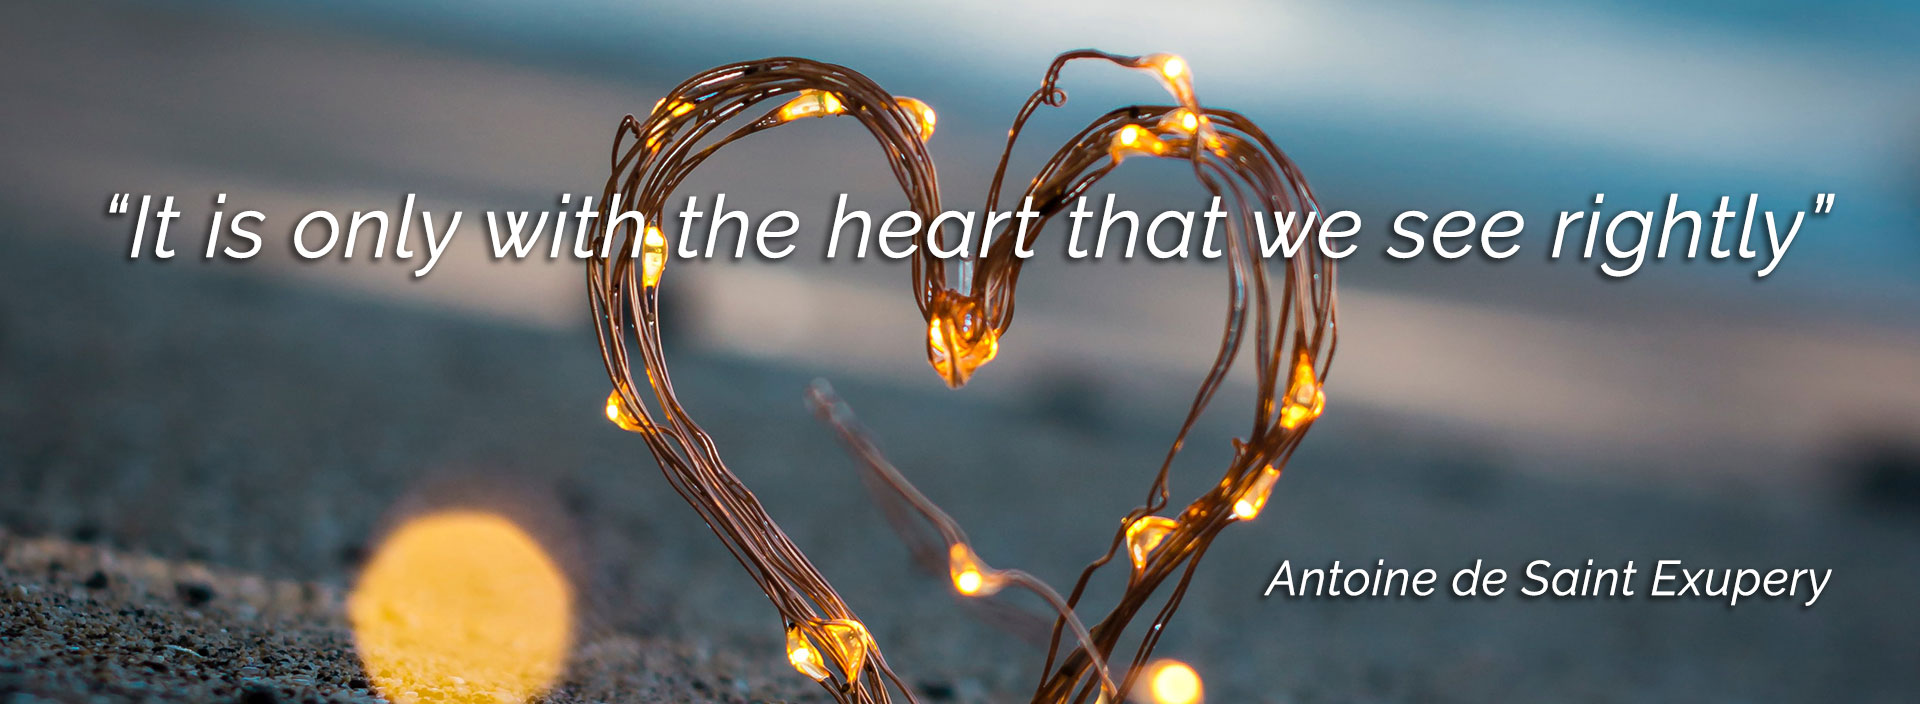 It is only with the heart that we see rightly